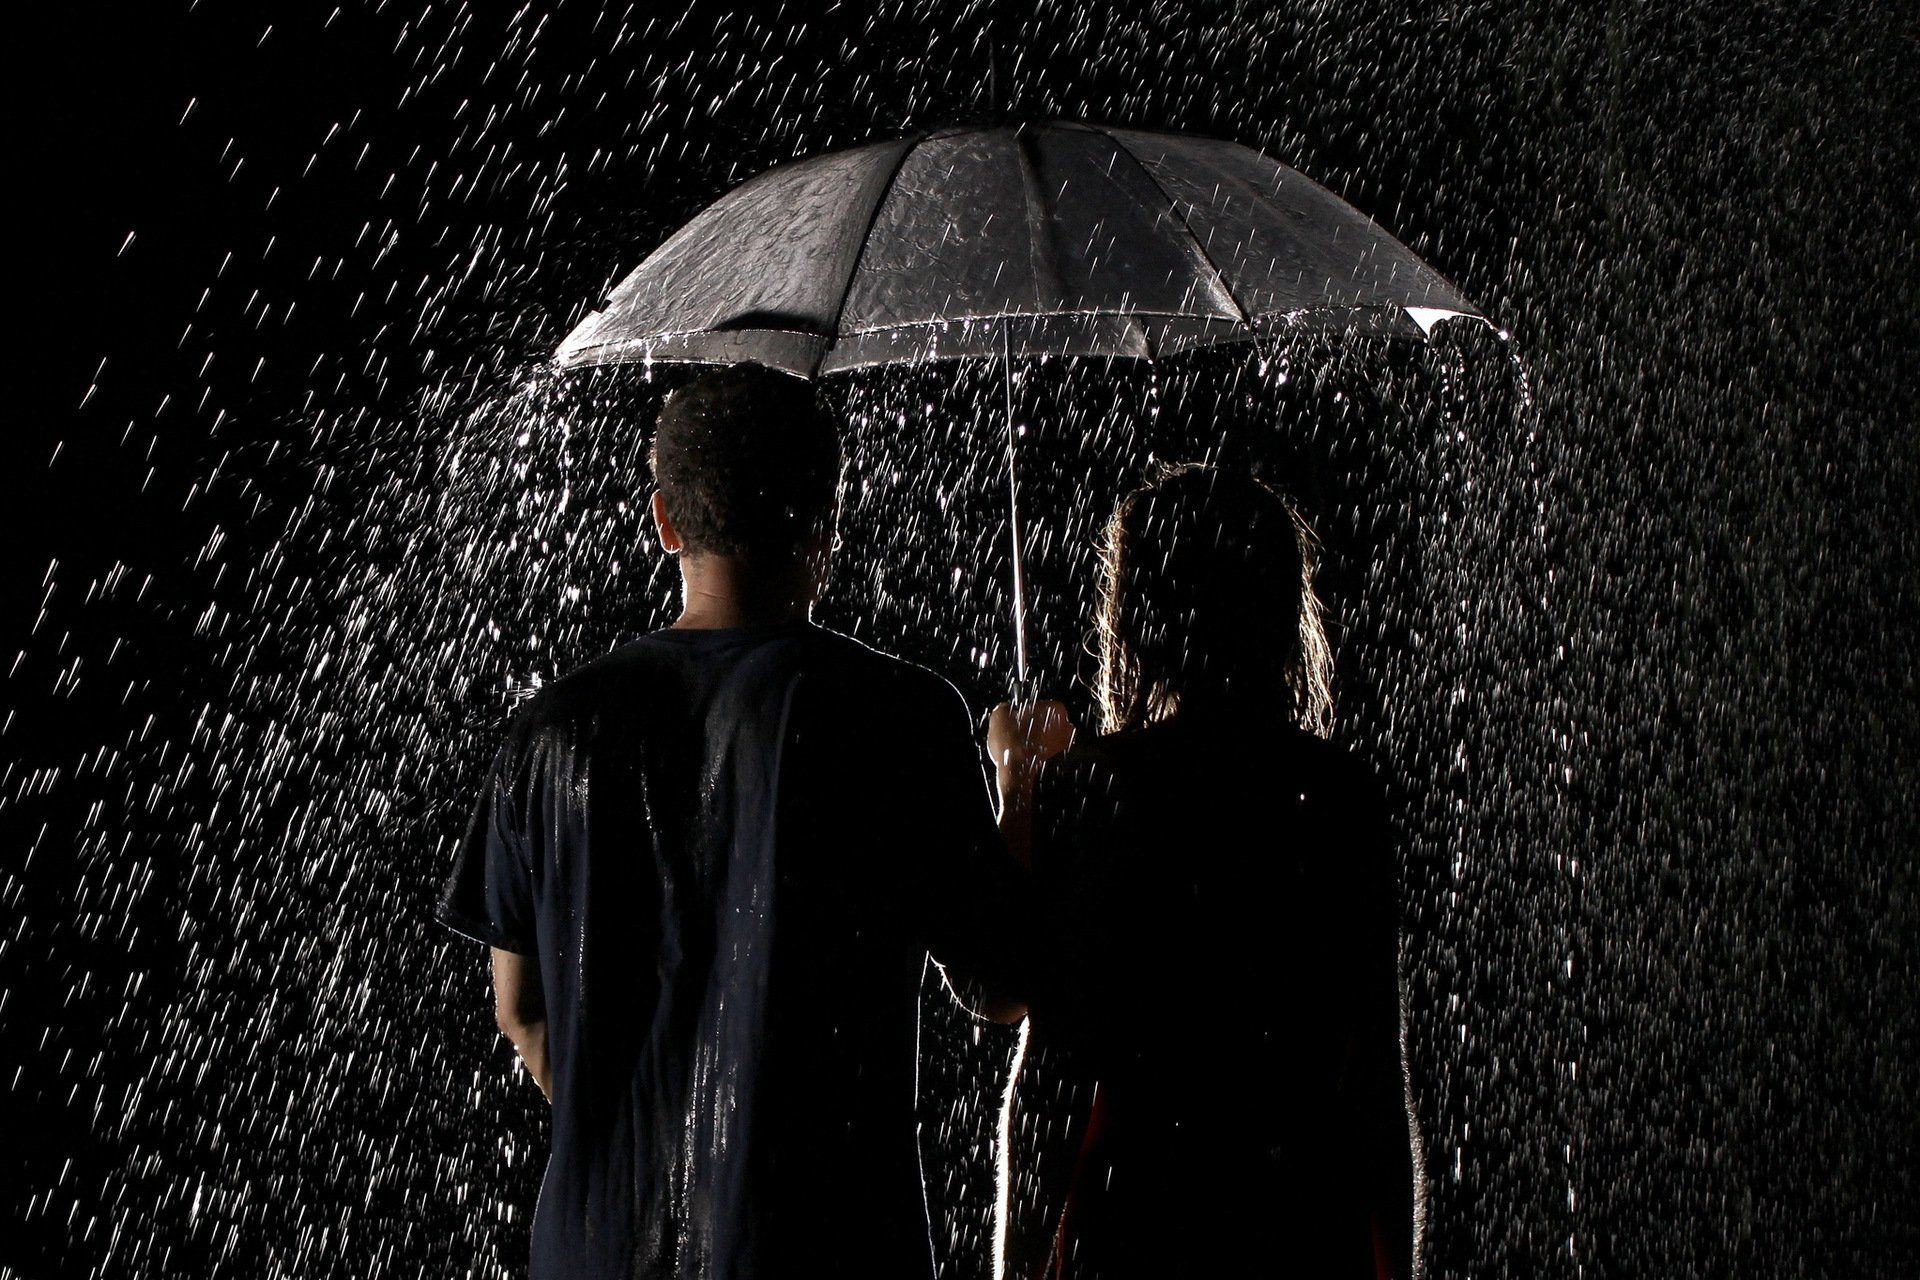 Loving couple after rain wallpaper download hd wallpaper pictures - Find Out Couple Under Rain Umbrella Wallpaper On Http Hdpicorner Com Couple Under Rain Umbrella Desktop Wallpapers Pinterest Rain Umbrella